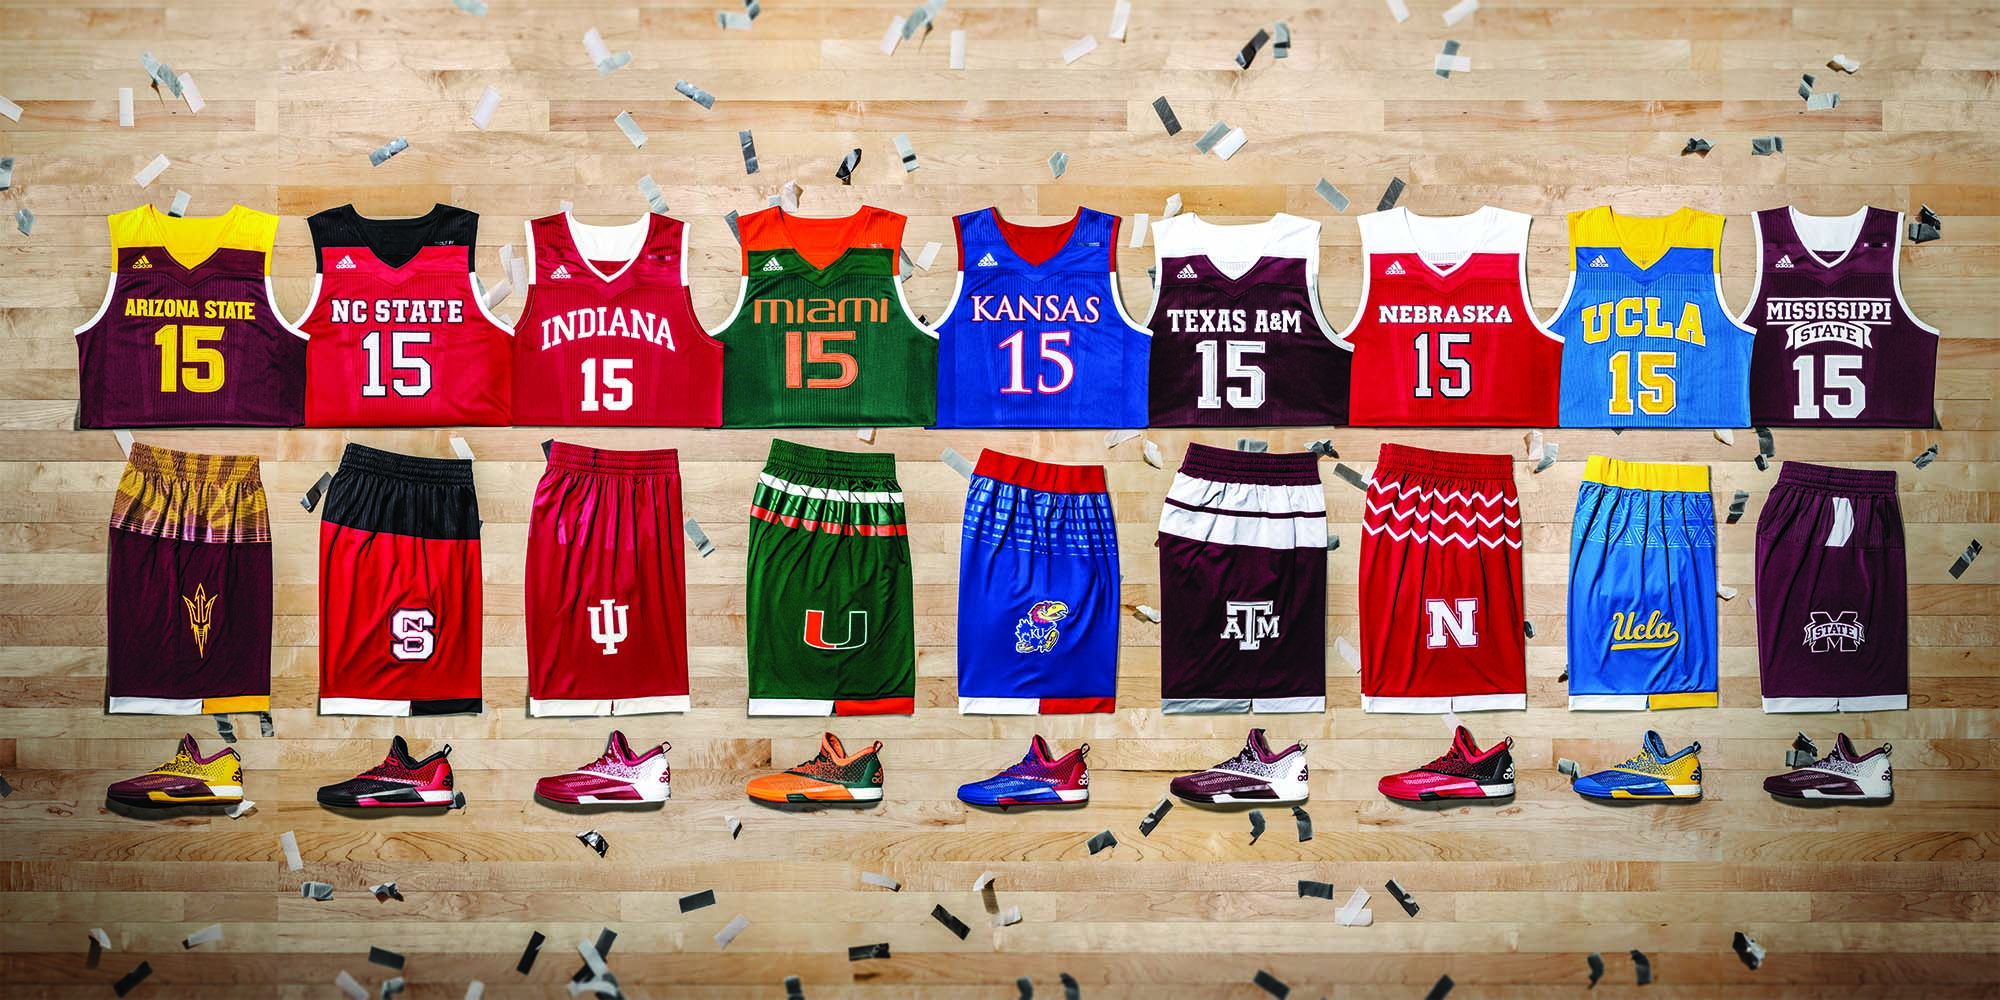 2017 March Madness Uniforms Revealed